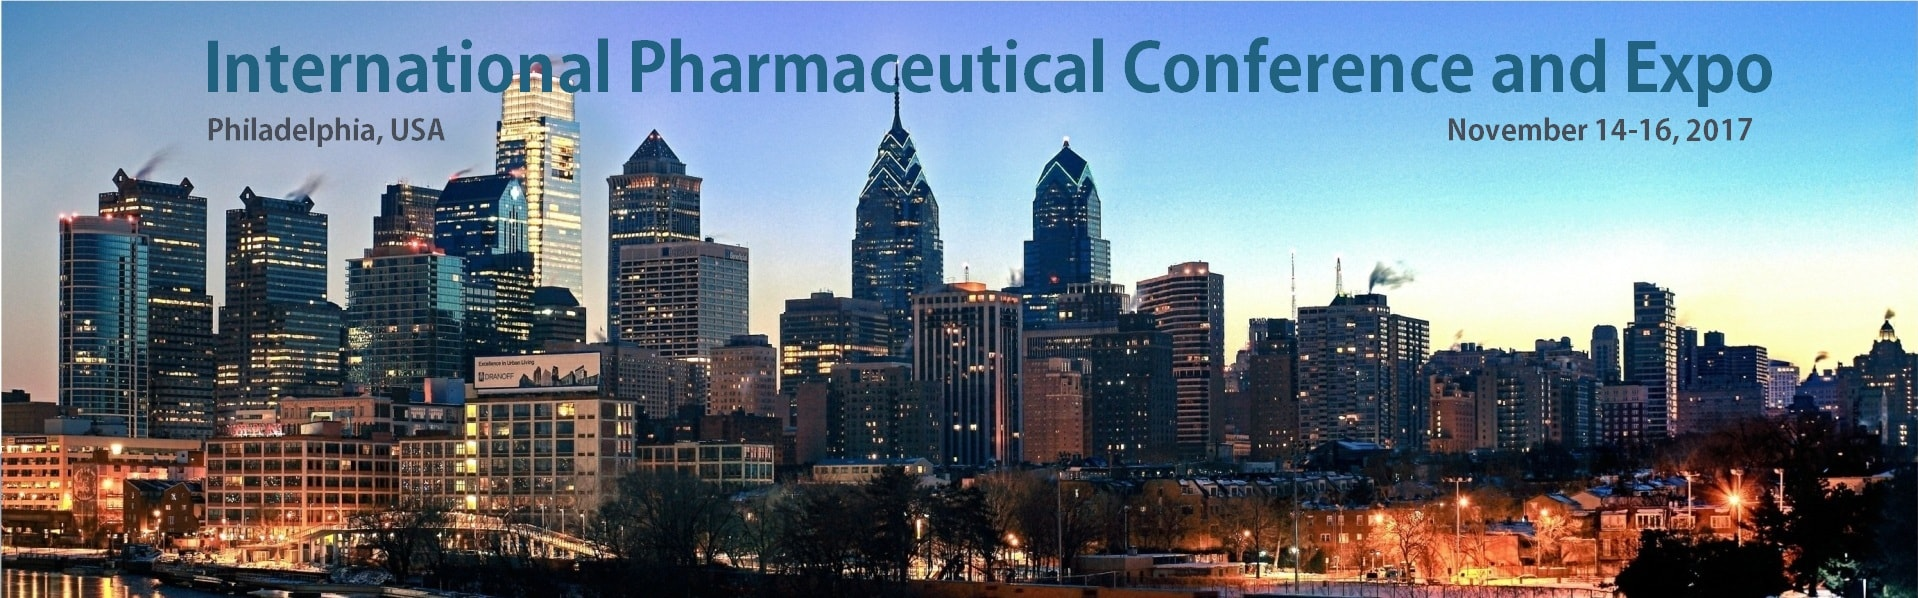 ipharma_2017_philly